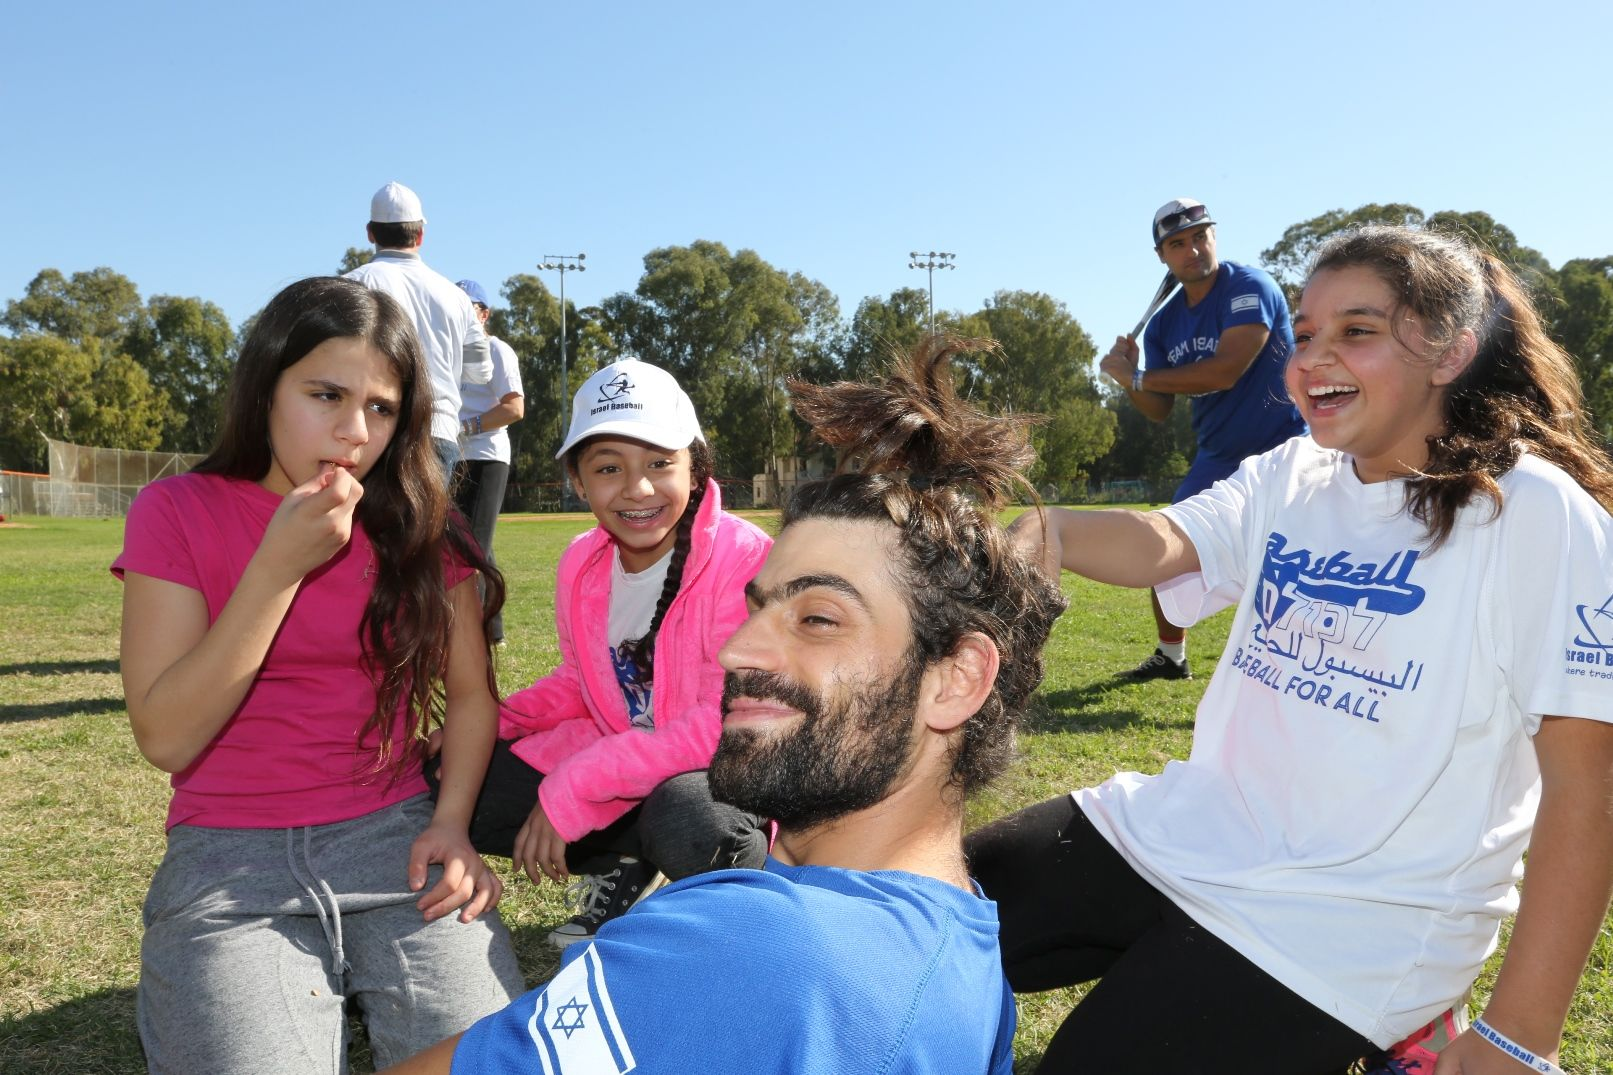 Participants from Ramla kidding around with head coach Ophir Katz. Baseball for All director Nate Fish is in background at right. Photo: Yossi Zamir/JNF